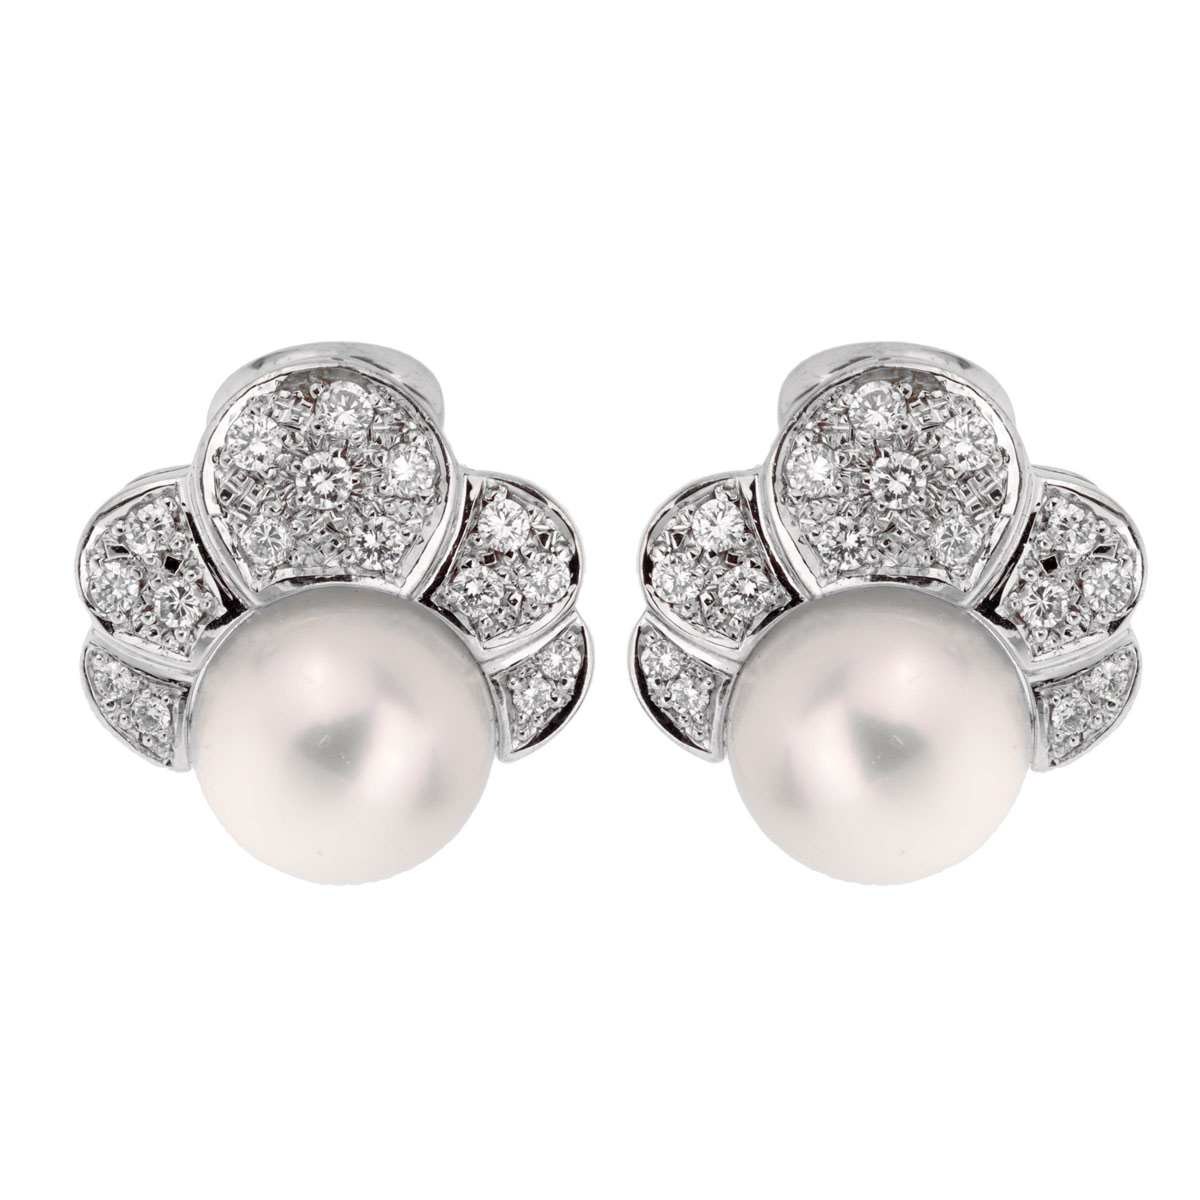 Estate Pearl Diamond White Gold Earrings - Estate Jewelry